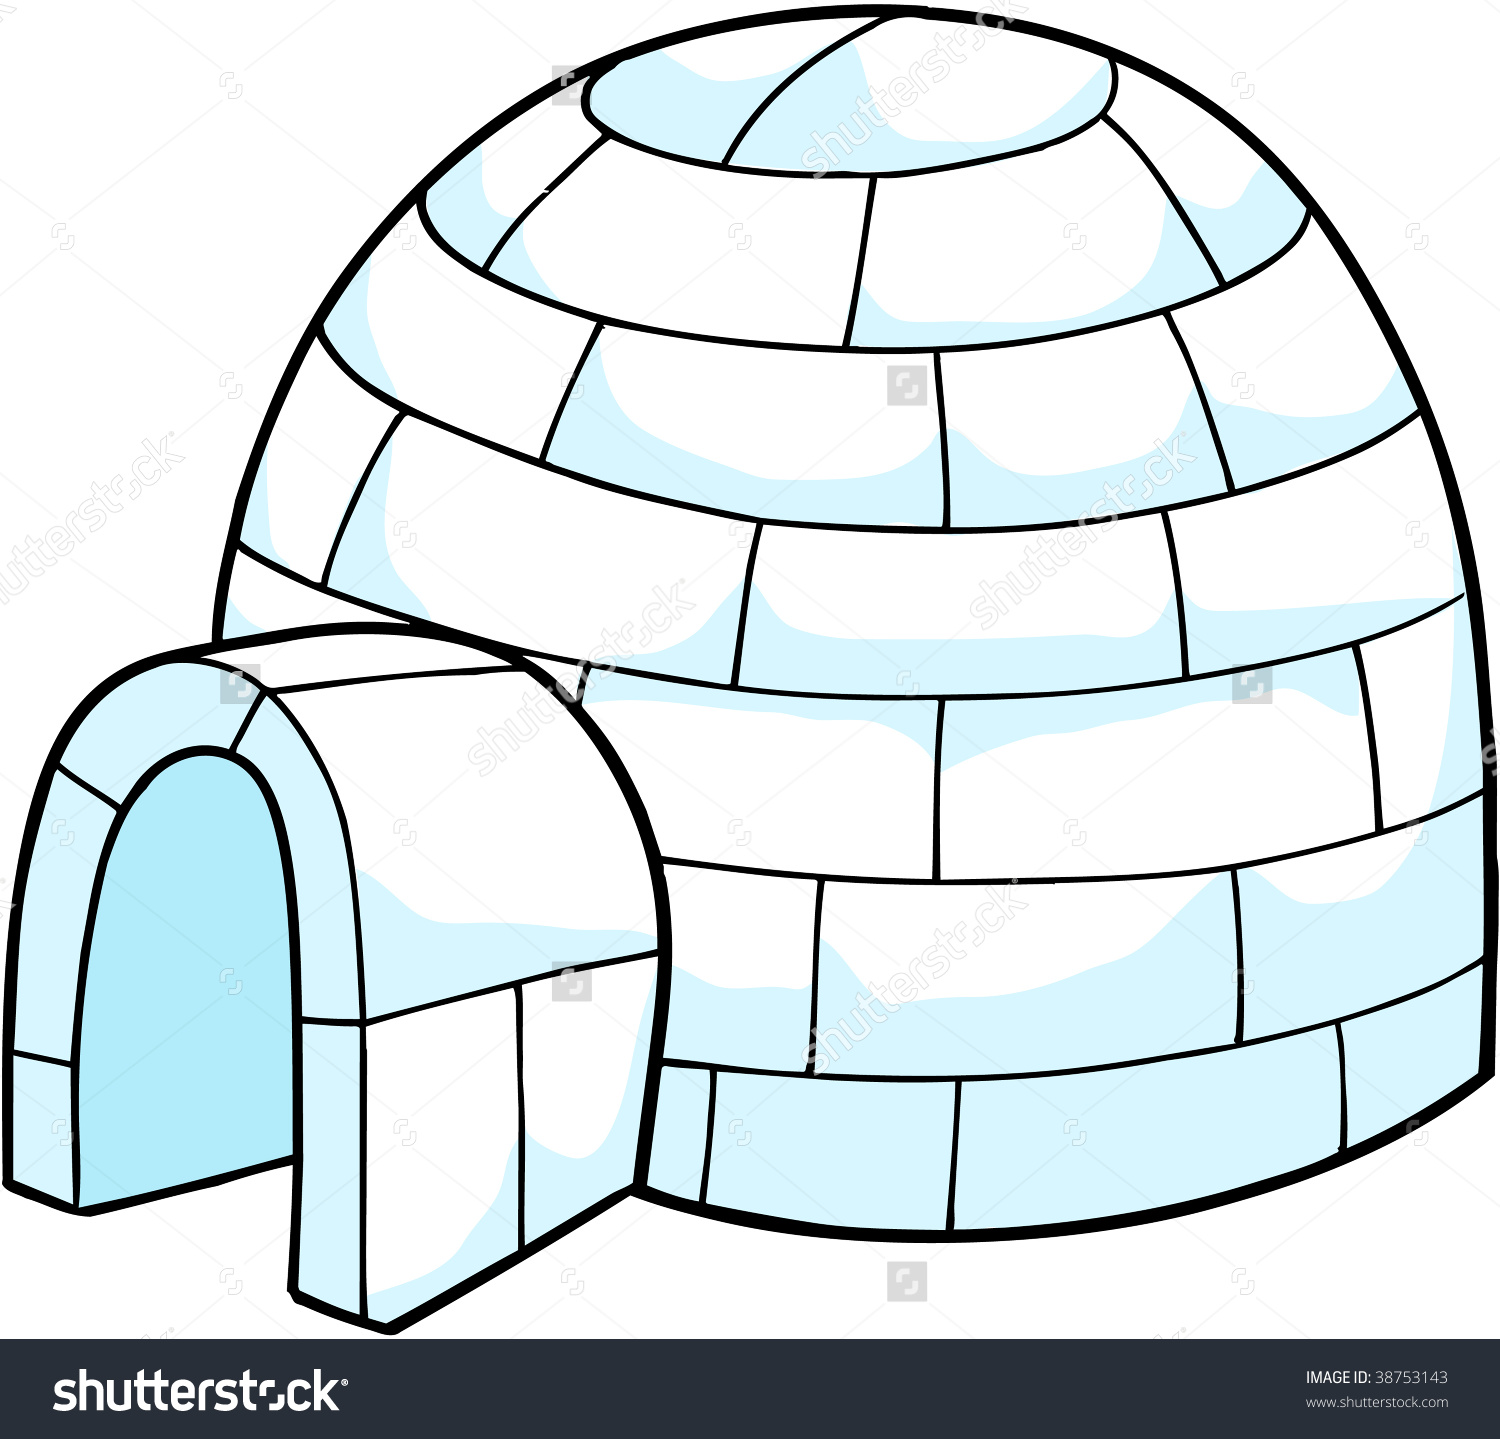 White Snow Igloo Vector Illustration Stock Vector 38753143.